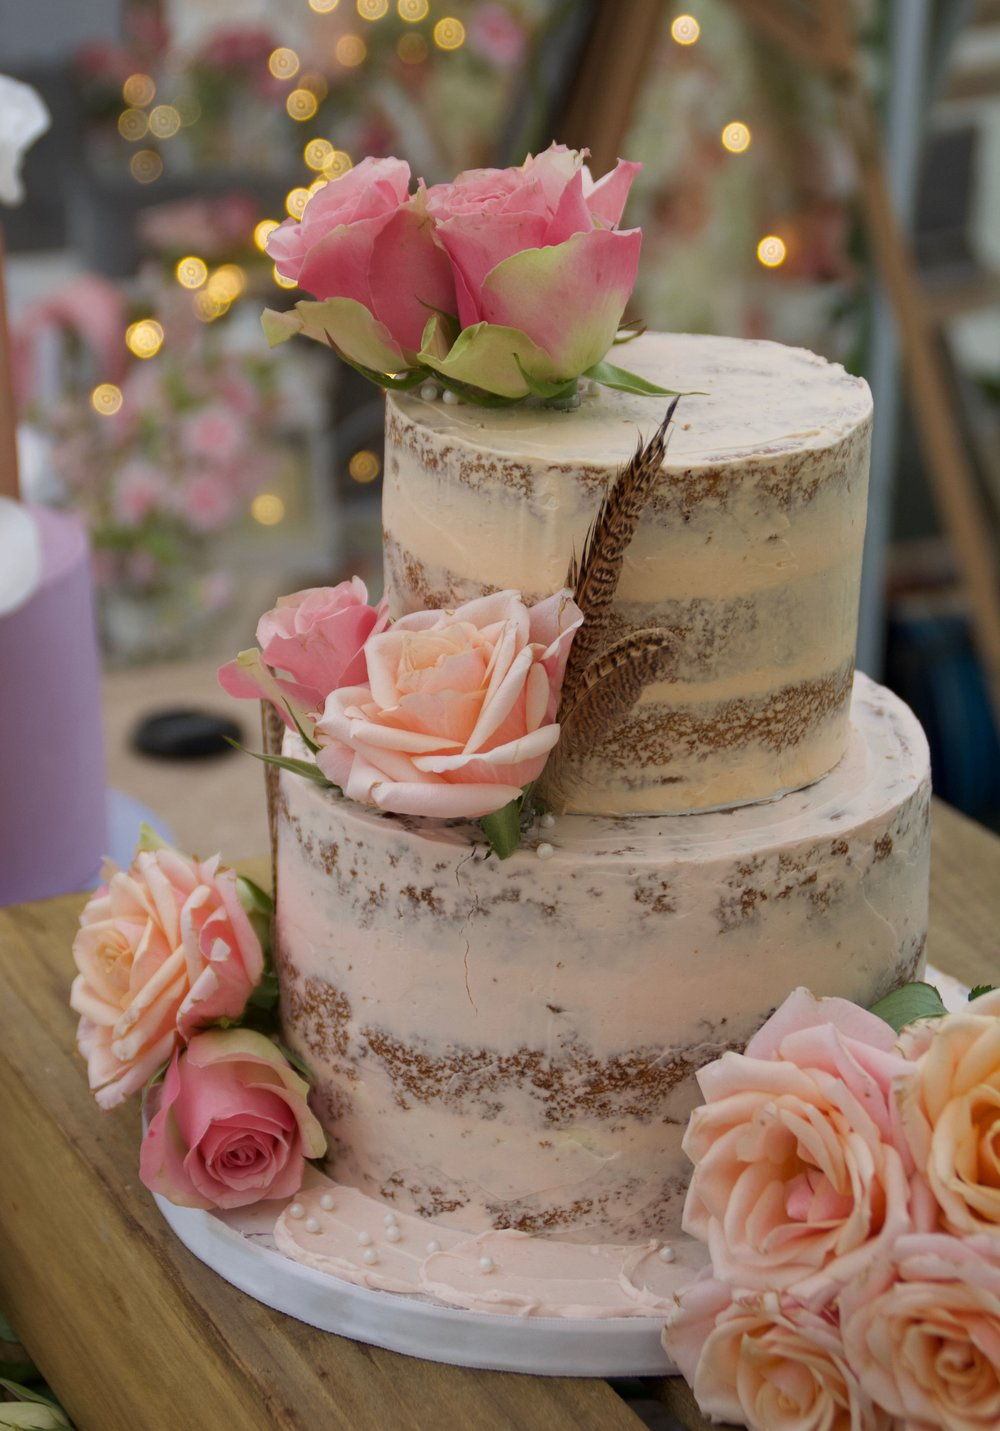 IMG_seminaked_boho_cake_pink_and_blush.jpg